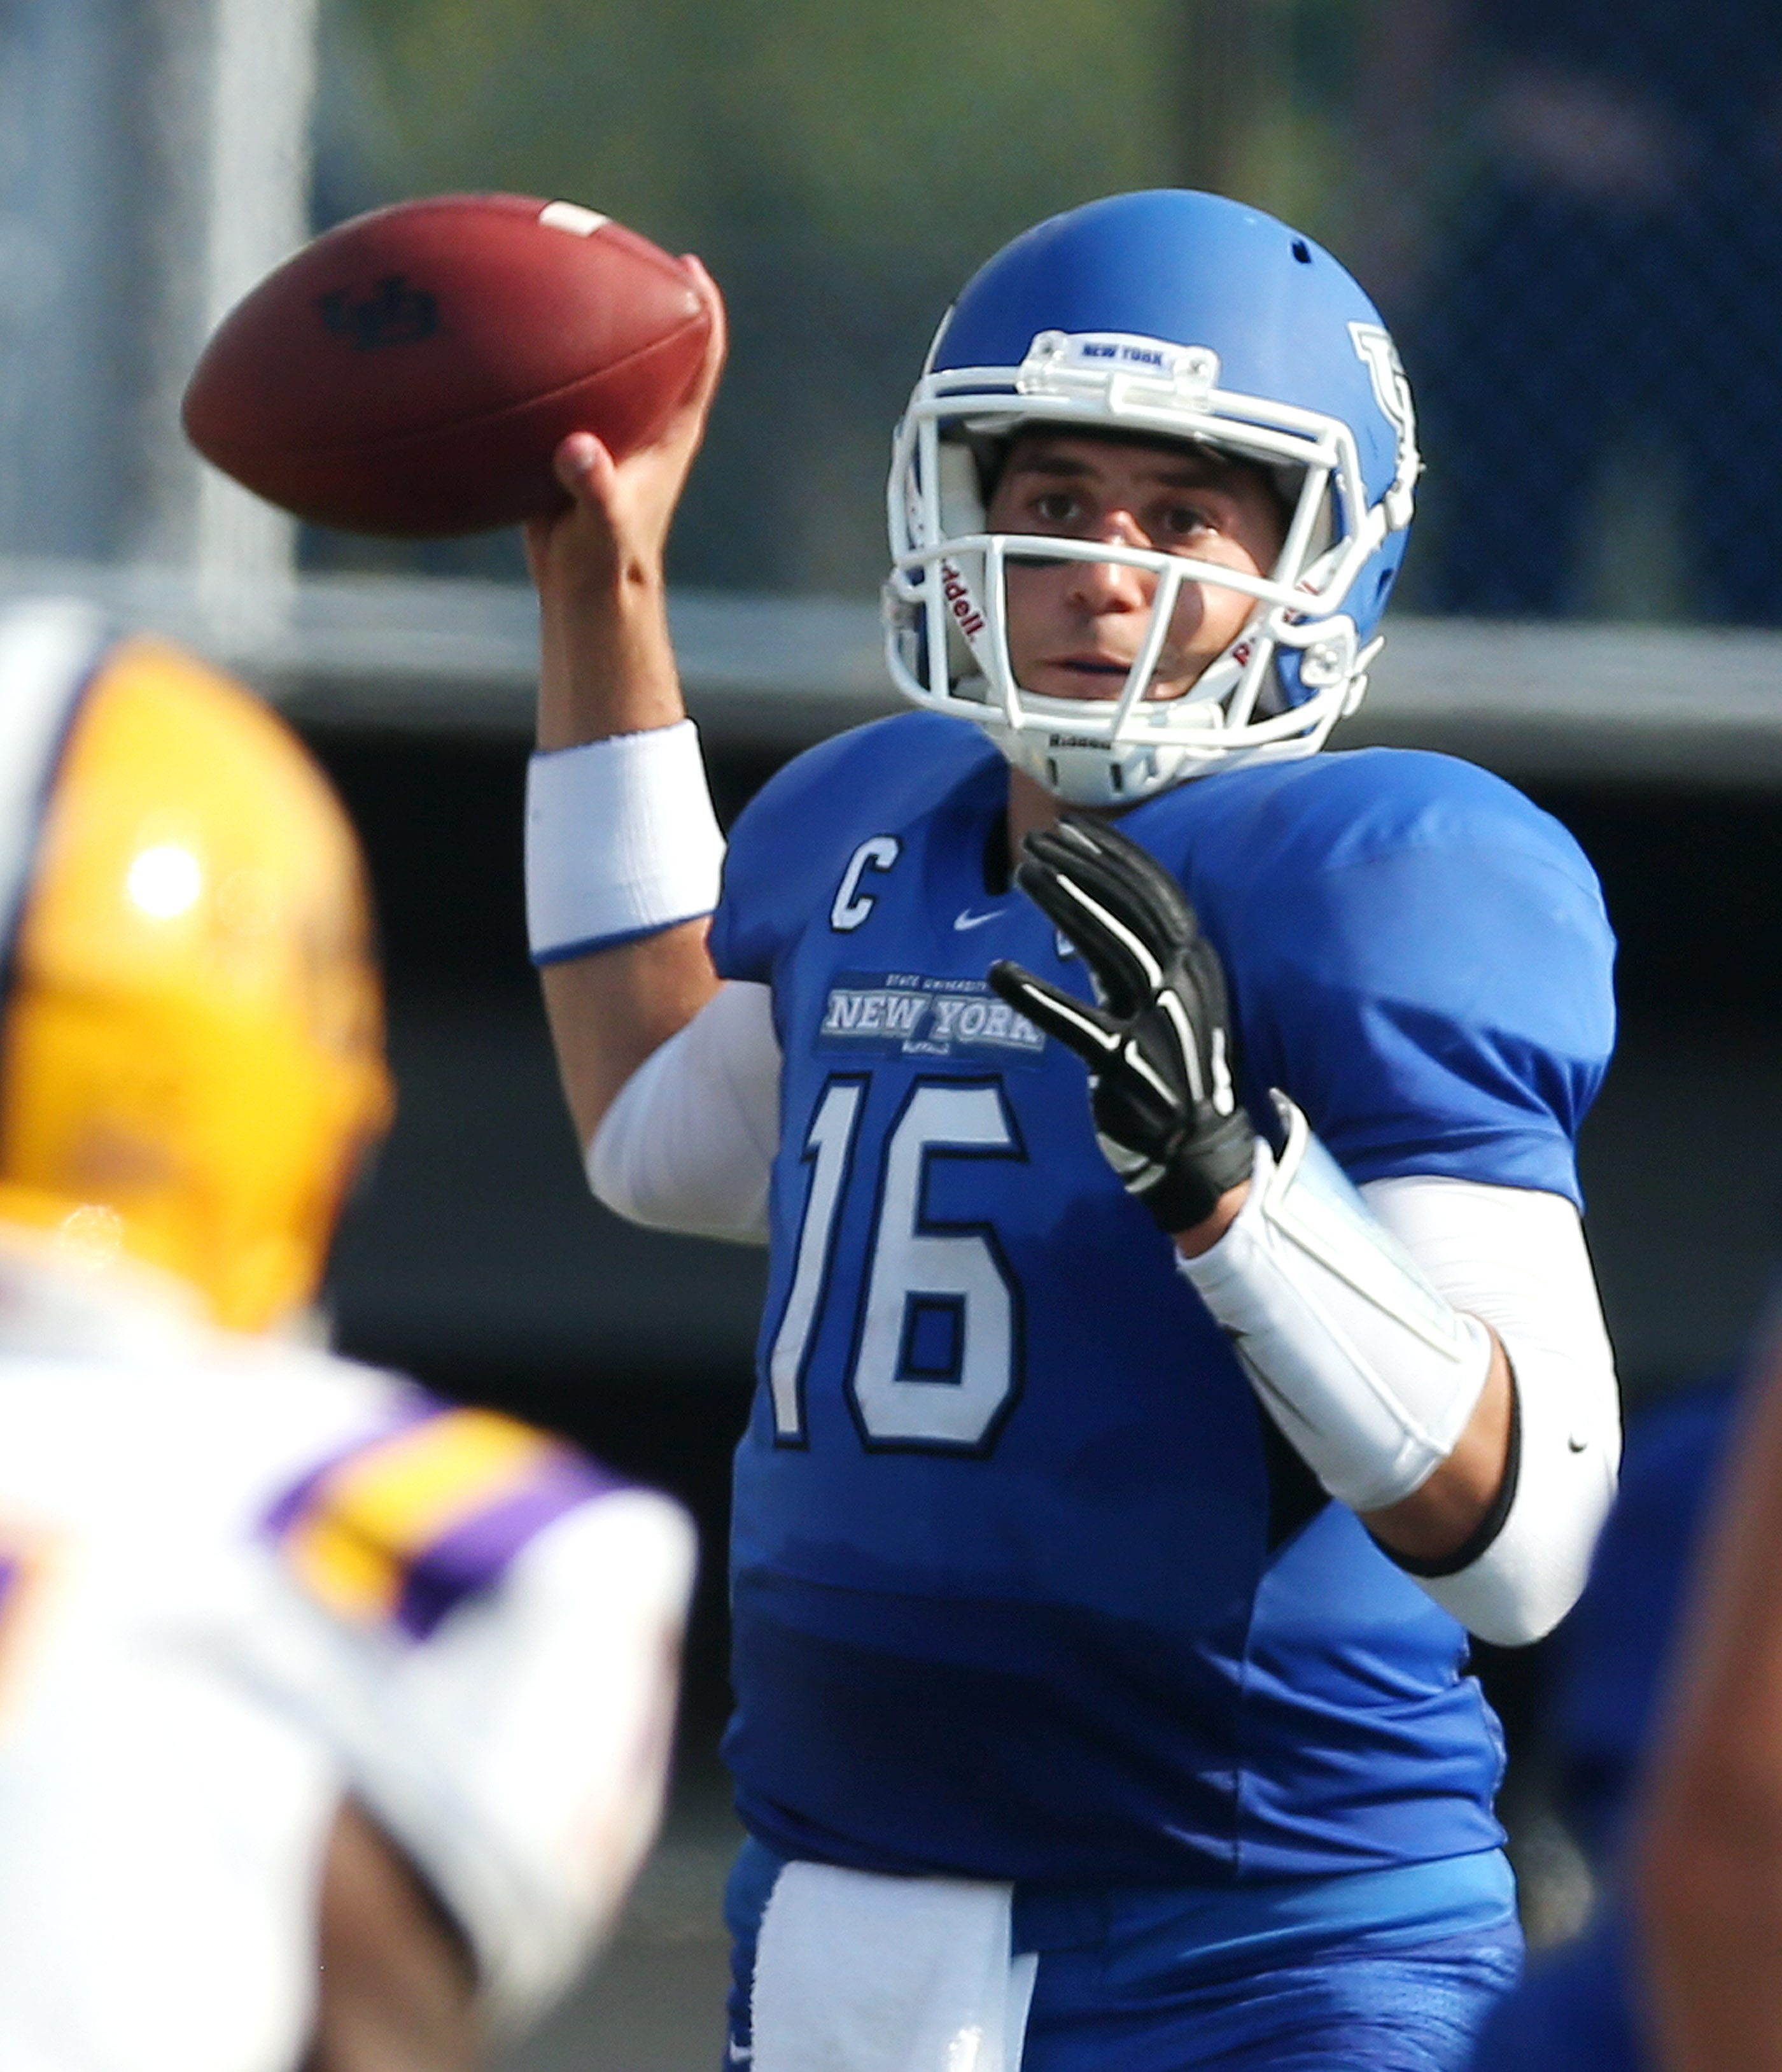 The Bills are bringing in UB quarterback Joe Licata to throw passes, on a tryout basis, during rookie minicamp.